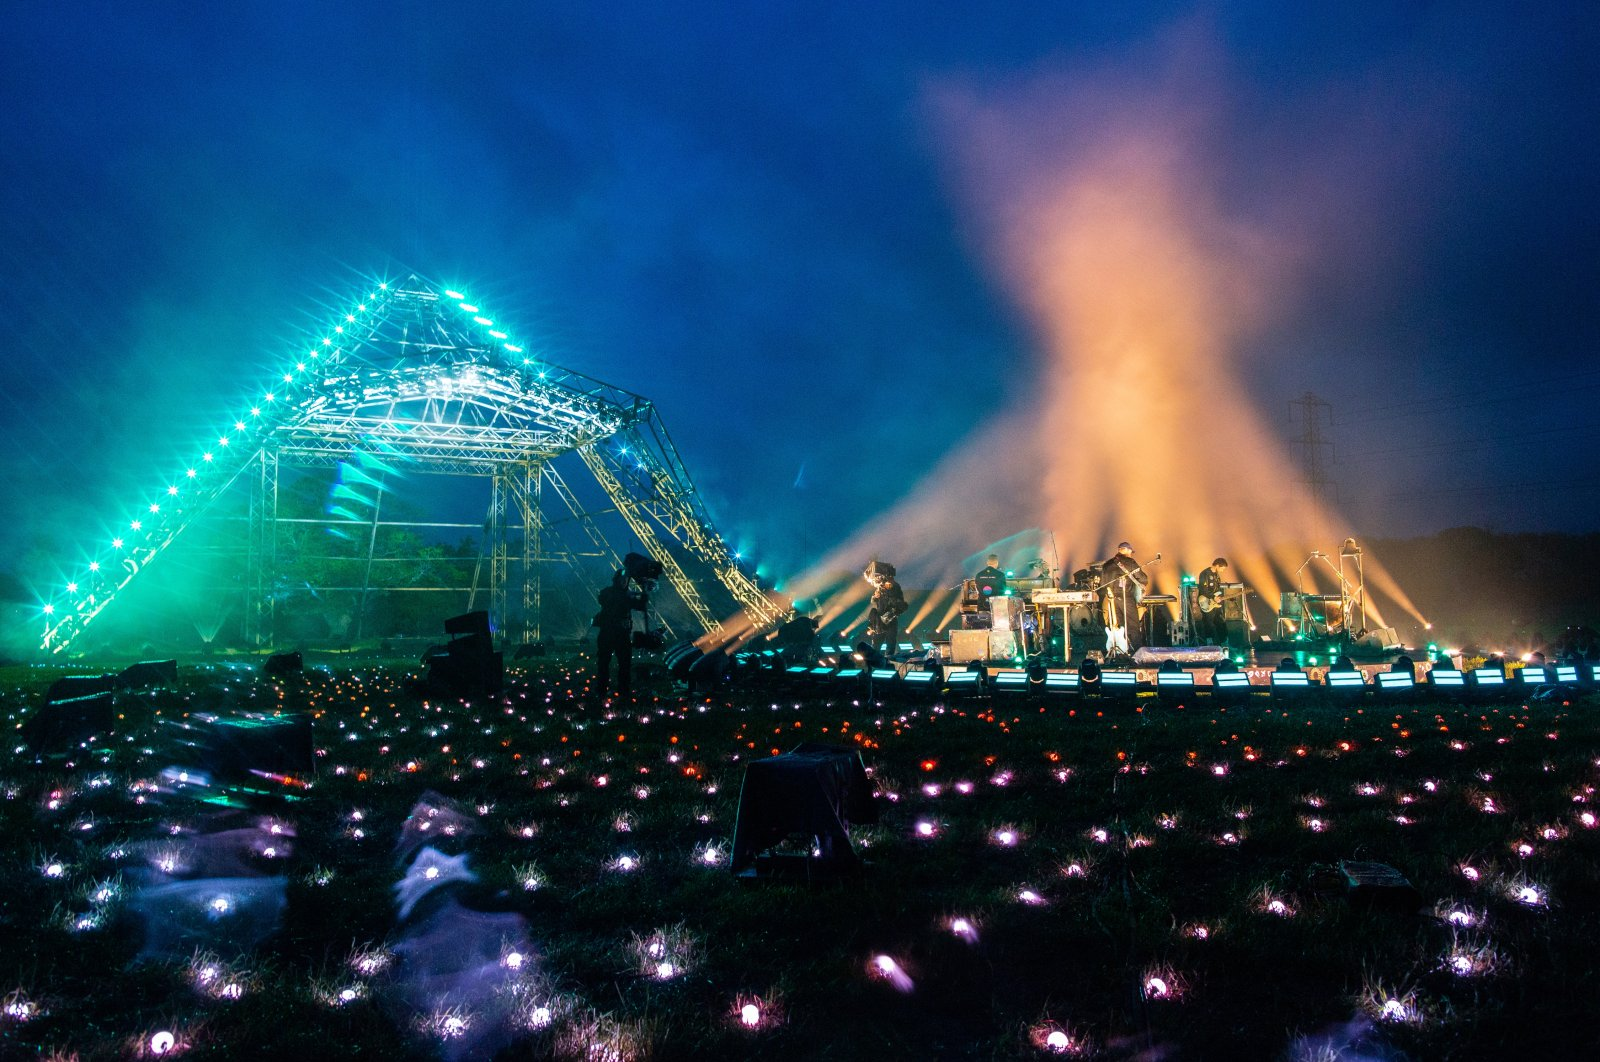 """In this image released on May 22nd, Coldplay performs in front of the main Pyramid Stage as part of the Glastonbury Festival Global Livestream """"Live at Worthy Farm"""" at Worthy Farm, Pilton on May 21, 2021 in Glastonbury, England. (Anna Barclay for Glastonbury Festival via Getty Images)"""